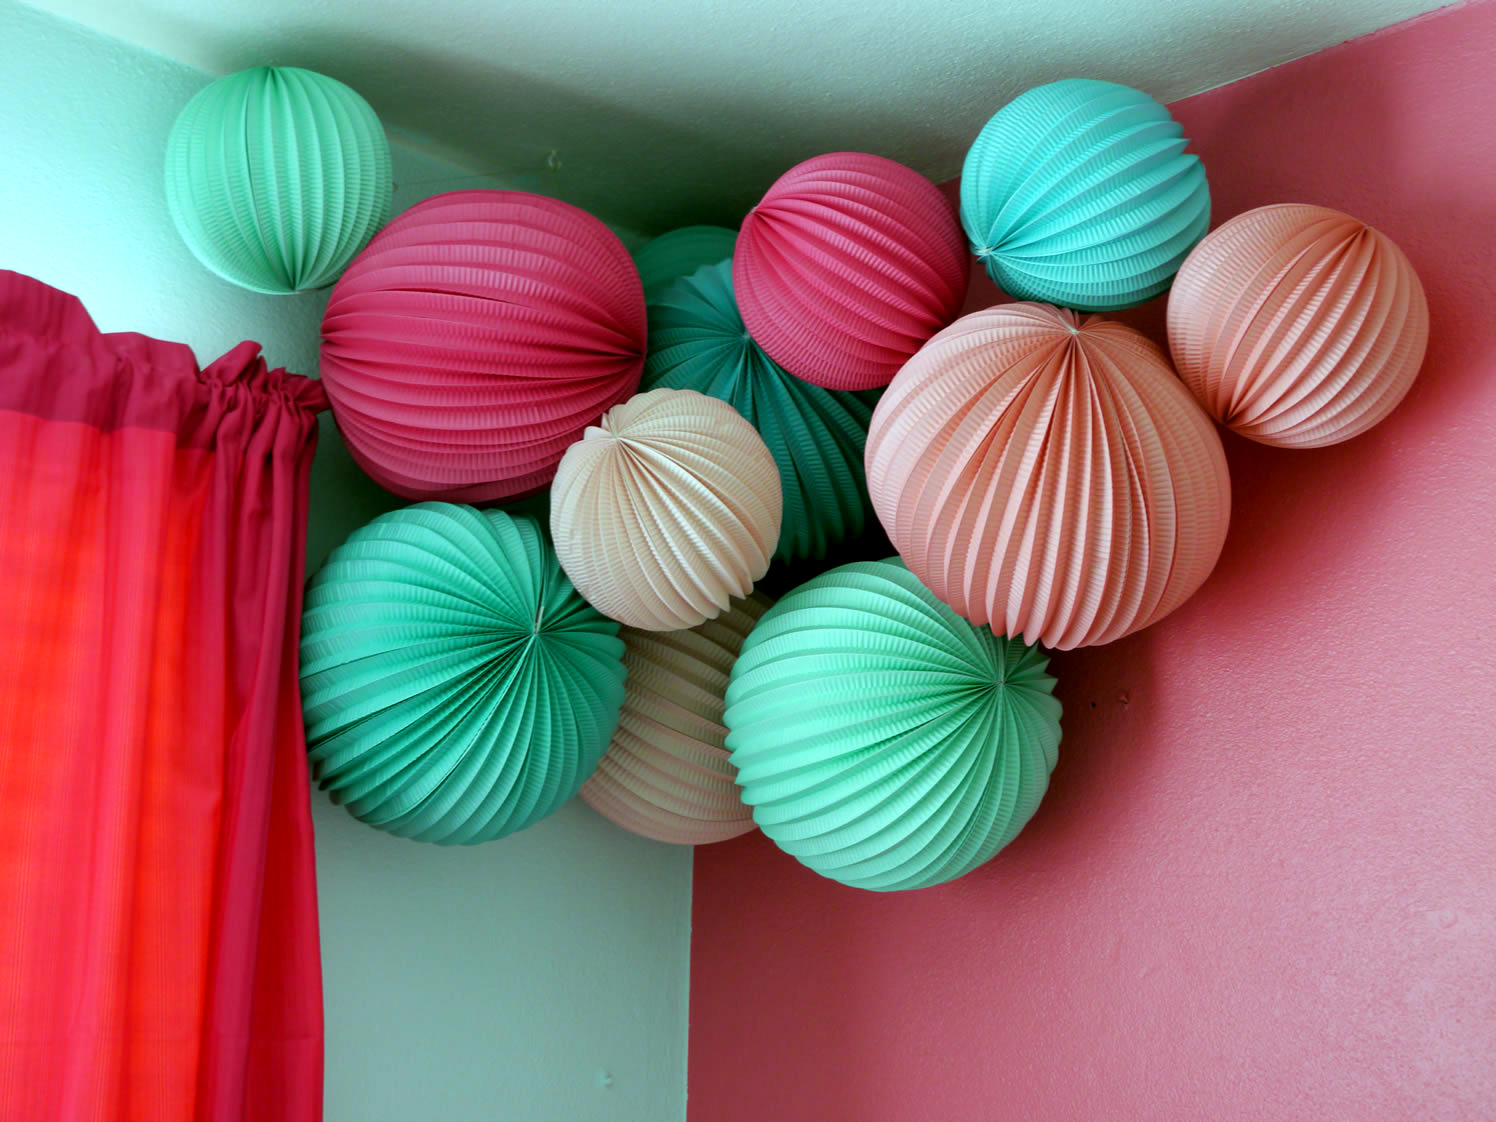 baby room decorating ideas with paper lanterns - Baby Zimmer Deko Junge